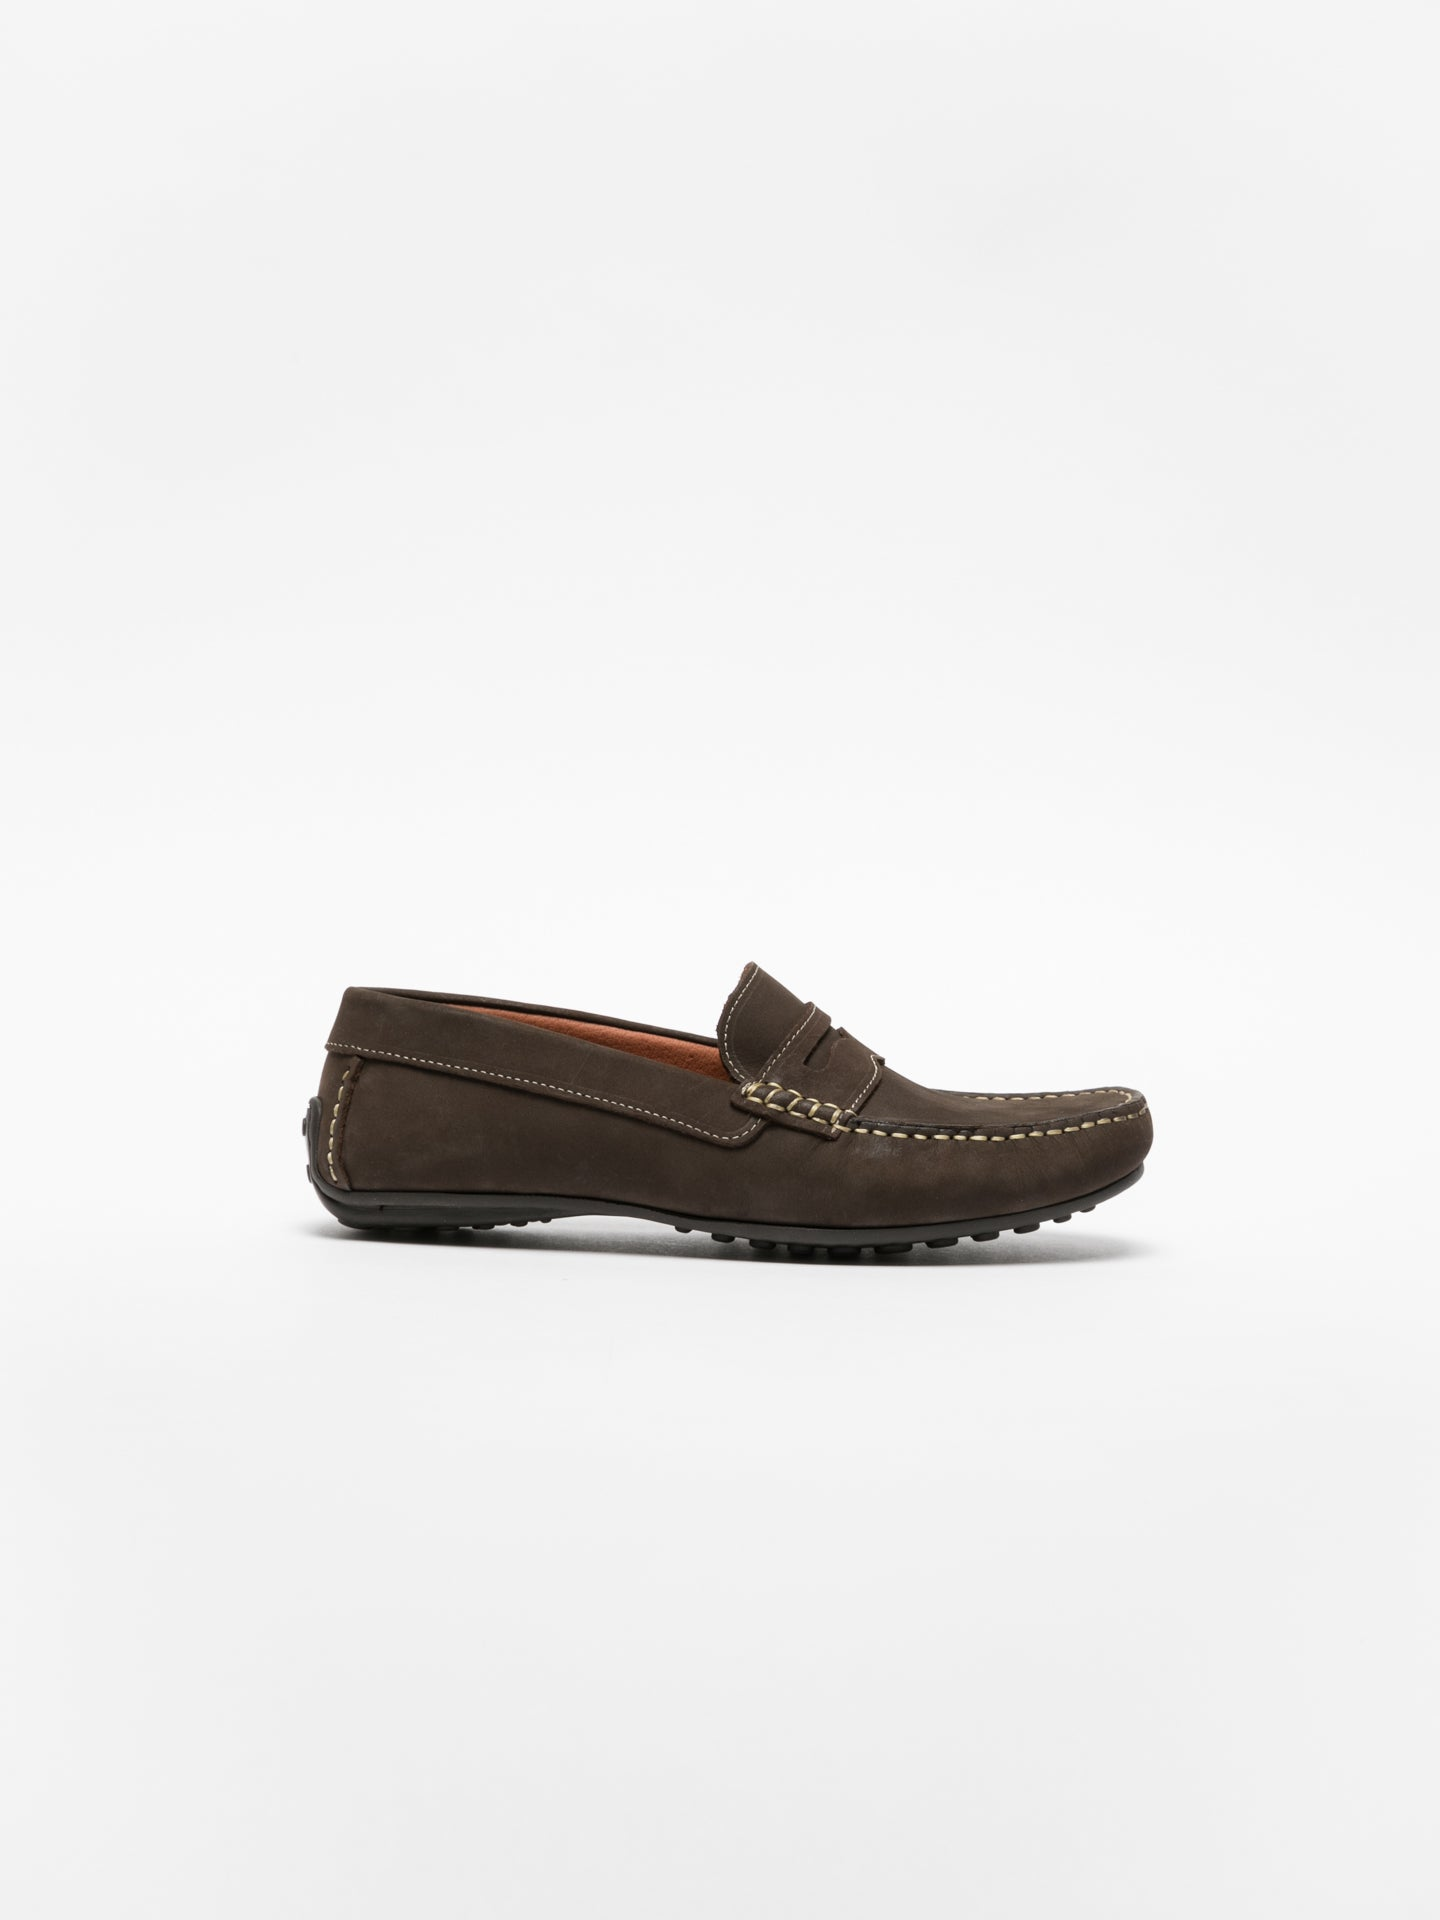 Foreva Loafers in Braun